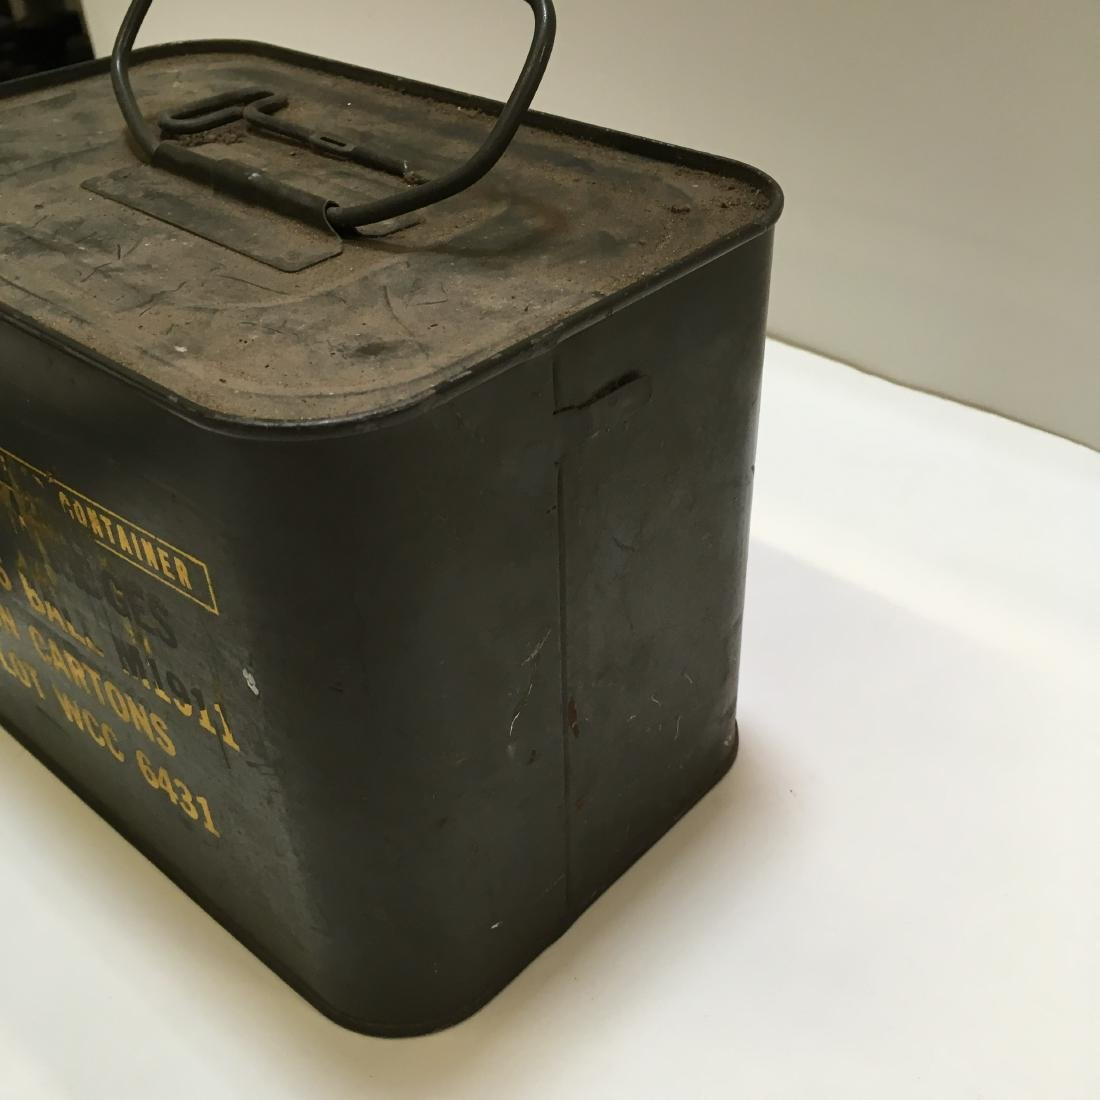 WWII ARMY SPADE & 600 RD WCC 45 BALL AMMO SPAM CAN - 3